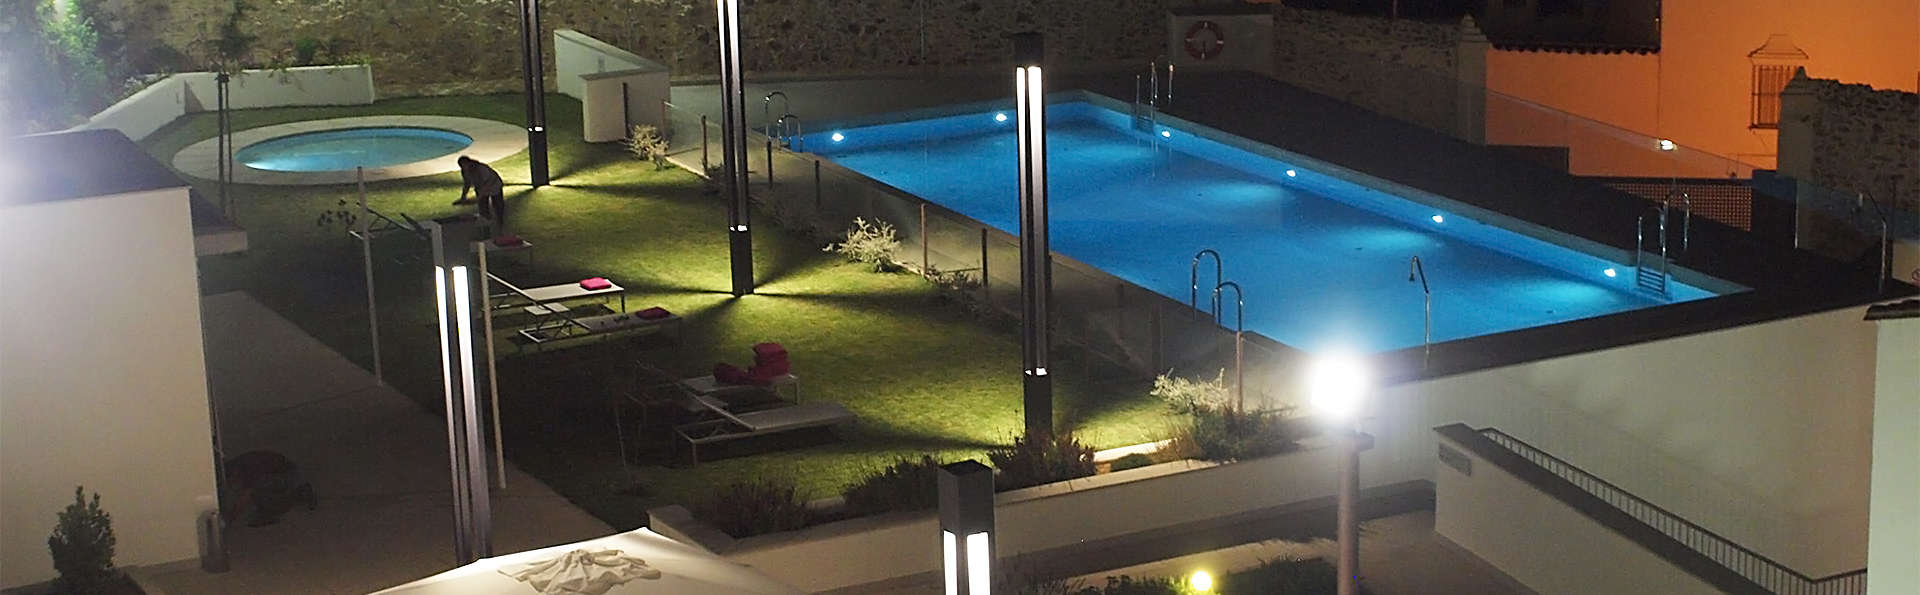 Hotel Convento Aracena & Spa - EDIT_pool.jpg